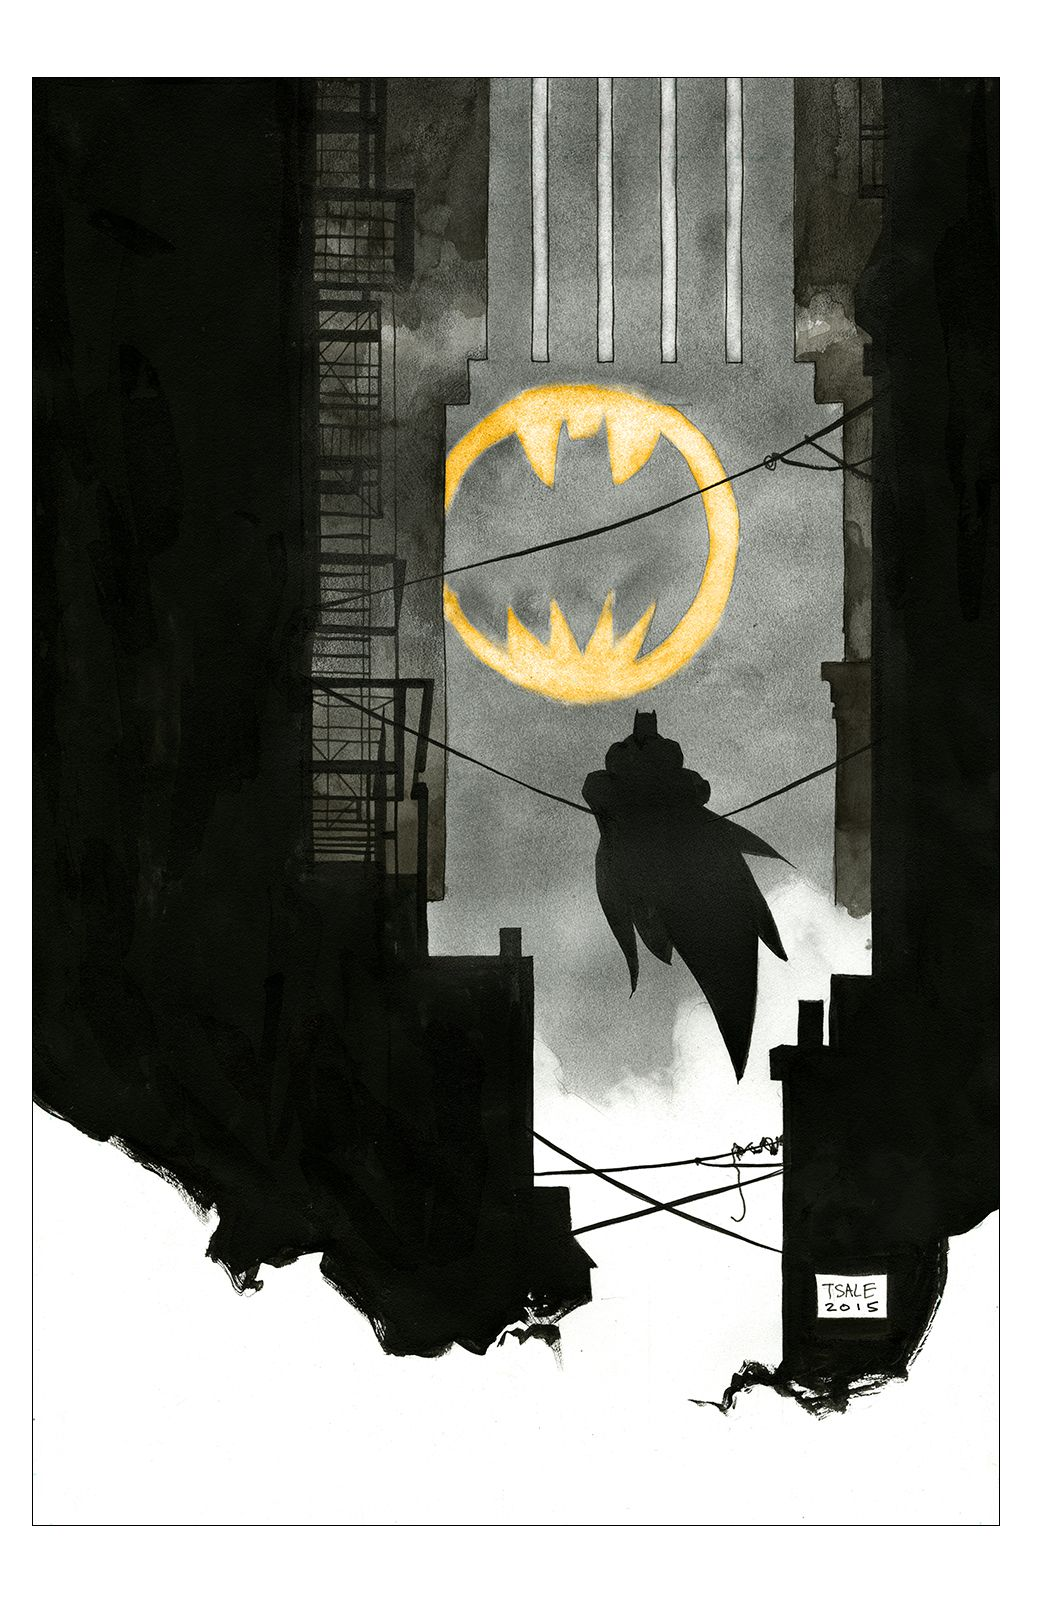 ""\""""Dark Knight III: The Master Race"""" variant cover""1052|1600|?|en|2|e3da5ff70f2babe289d88fd8cfe5963b|False|UNLIKELY|0.3107985556125641